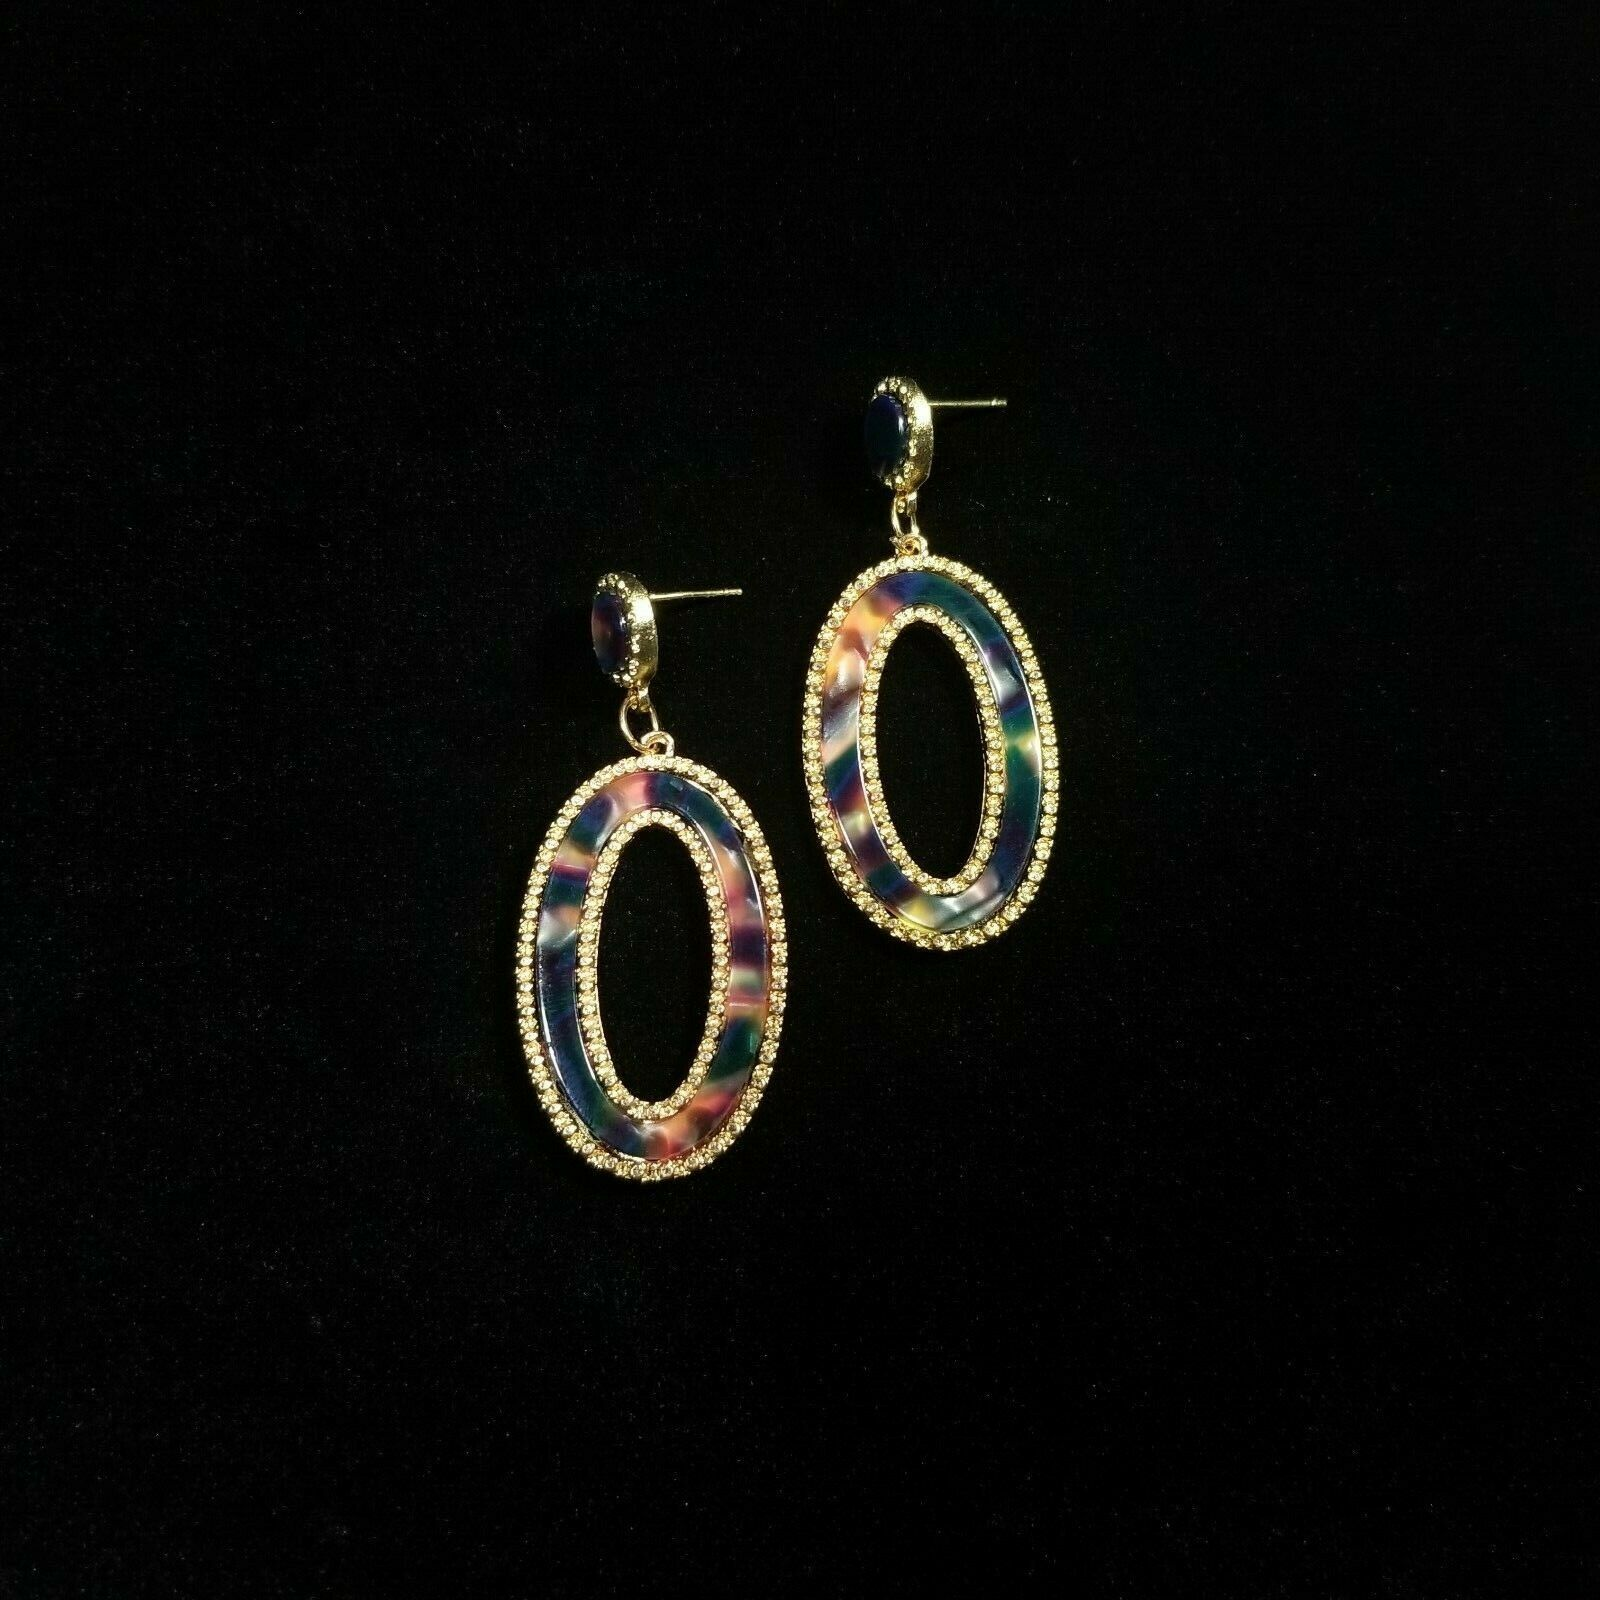 Primary image for Trendy Urban Gold Tone Multi Color Acrylic Oval Shape Drop Dangle Post Earrings